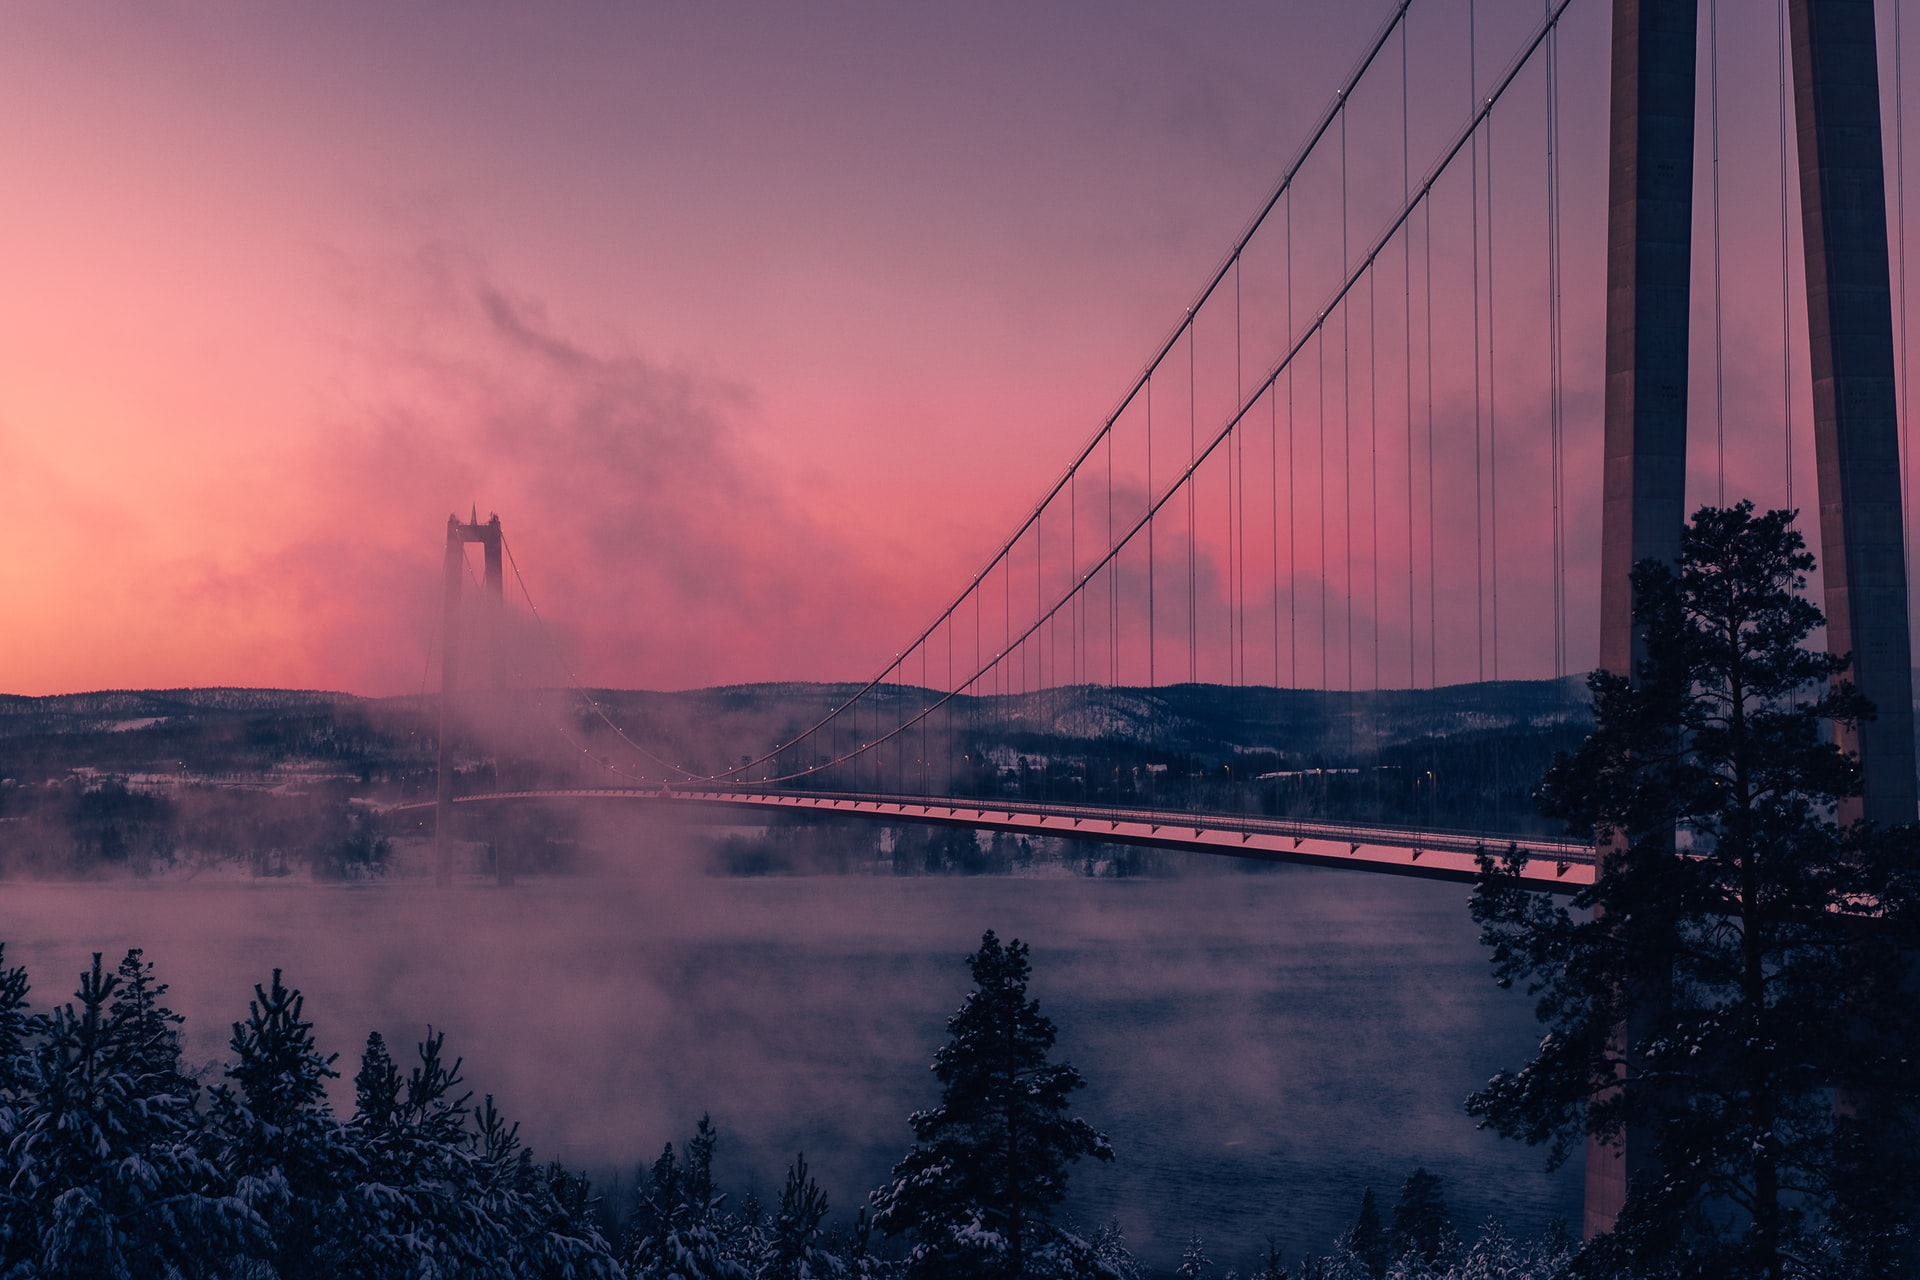 Högakustenbron bridge in the pink and the clouds. Photo courtesy of Anders Jildén on Unsplash.